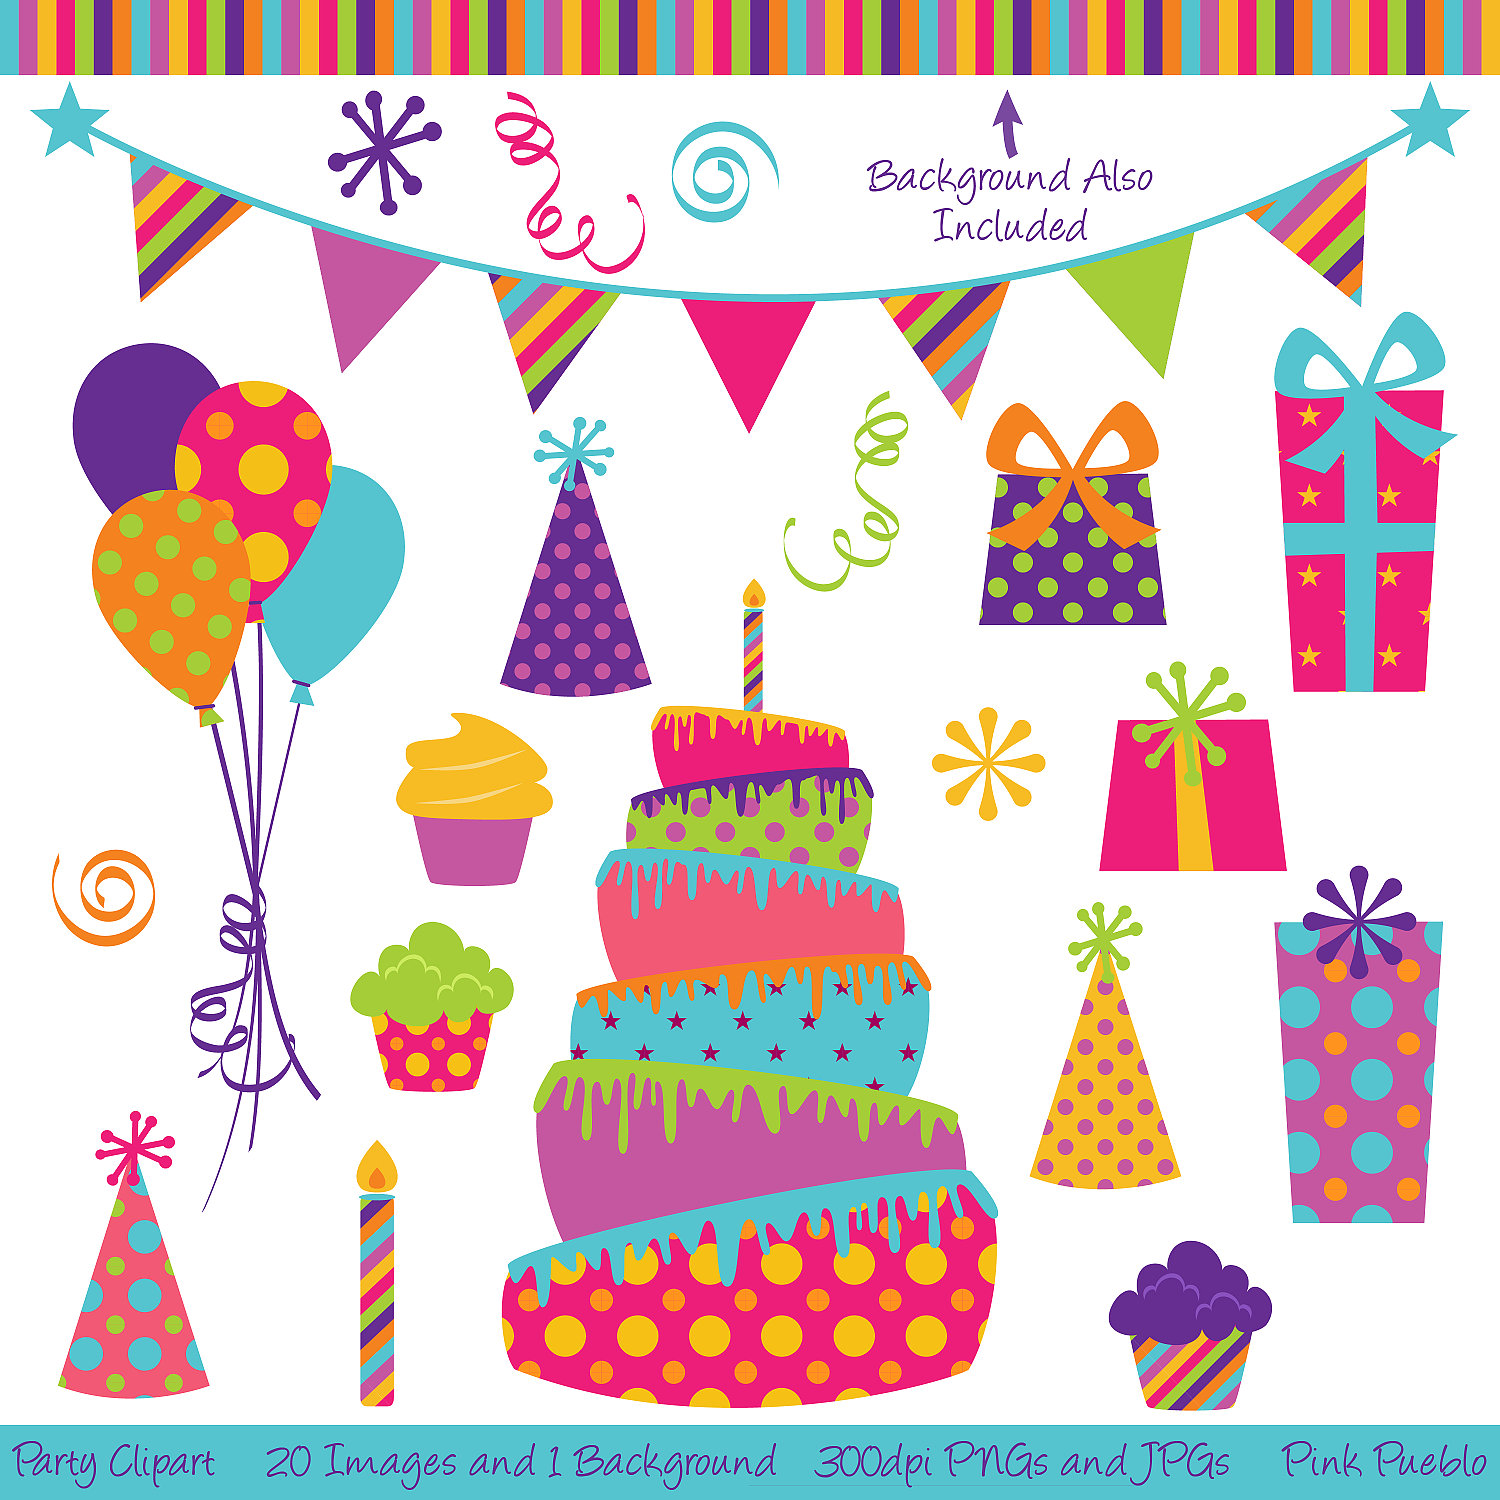 Party Clipart Clip Art Birthday Cake Cli-Party Clipart Clip Art Birthday Cake Clipart Clip By Pinkpueblo-18